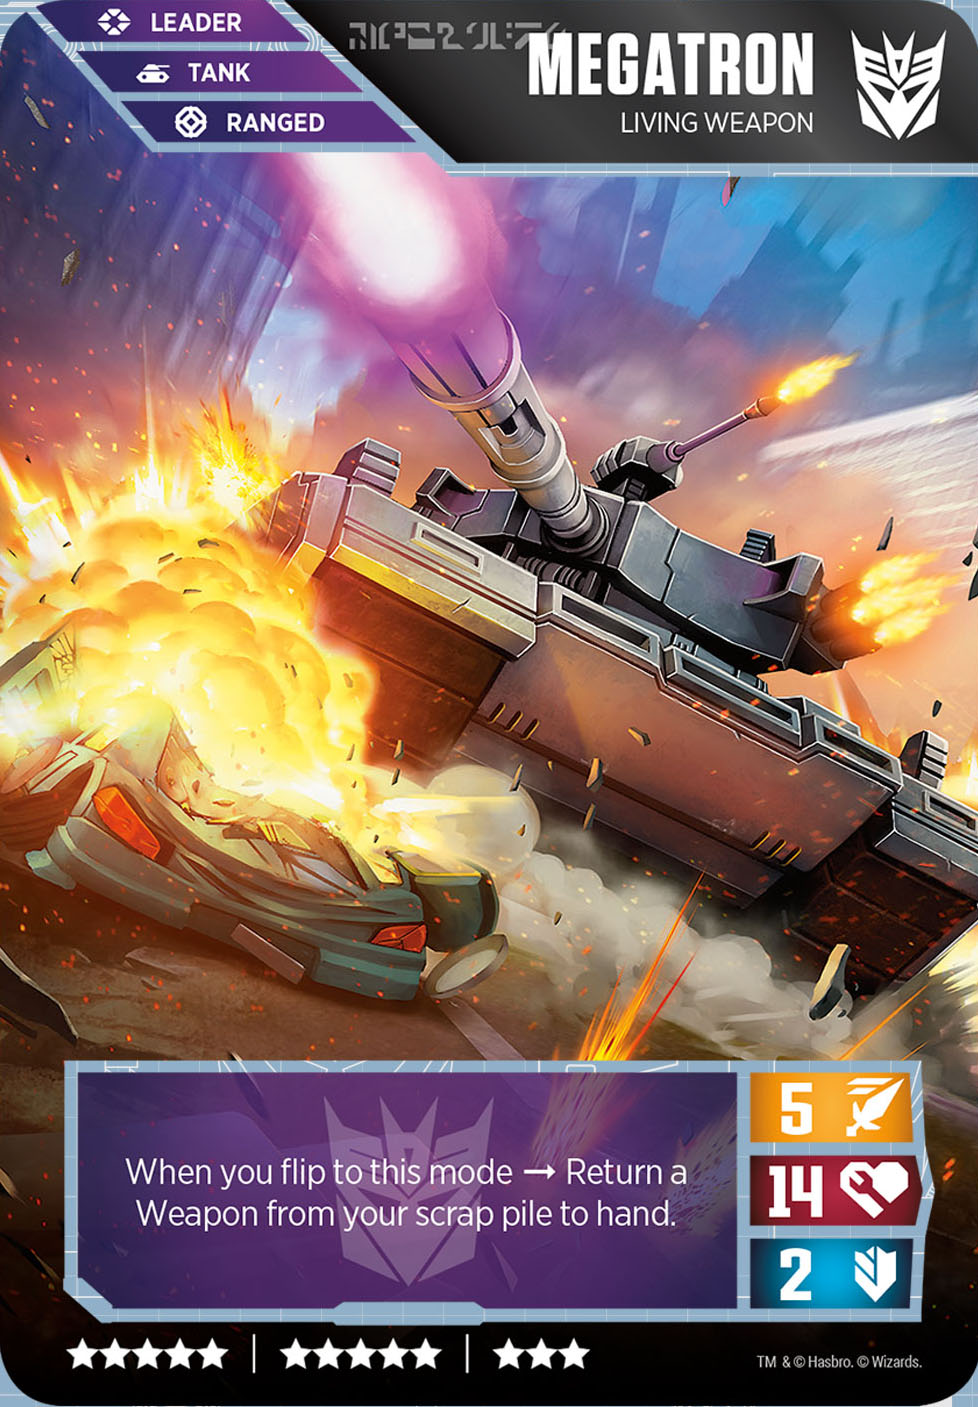 https://images.fortressmaximus.io/cards/ee1/character/megatron-living-weapon-EE1-alt.jpg